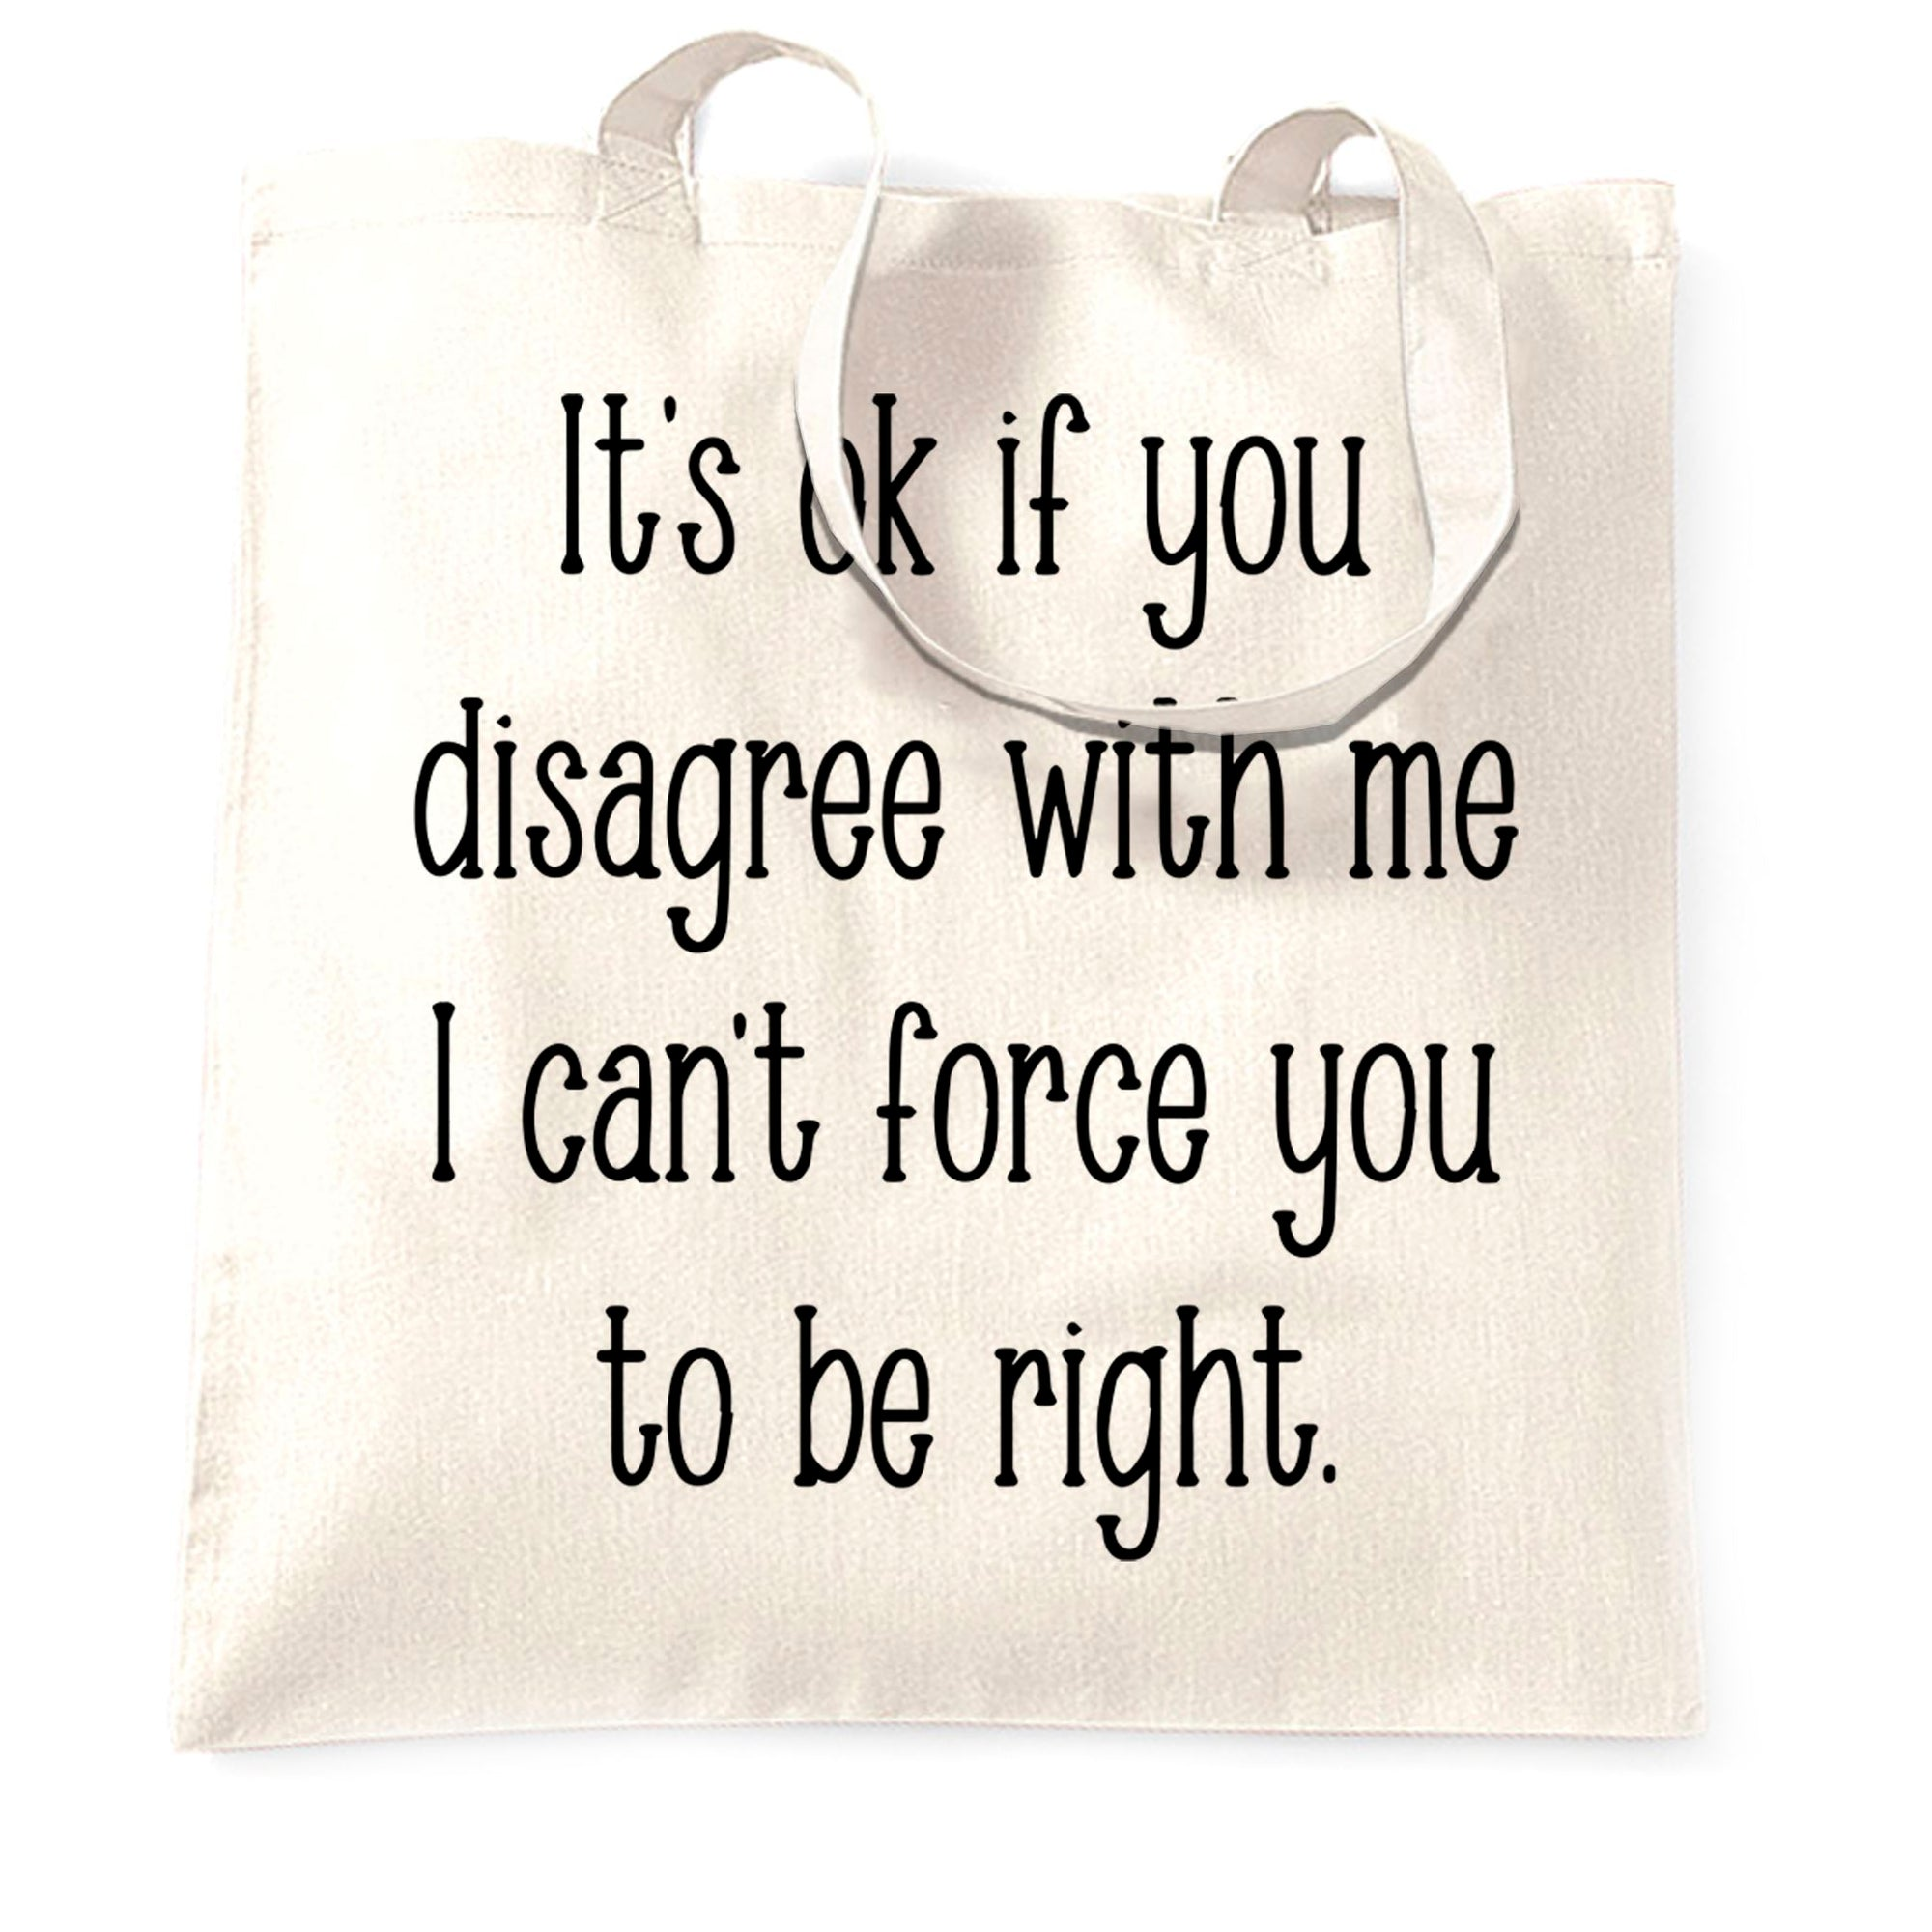 I Can't Force You To Be Right Funny Tote Bag